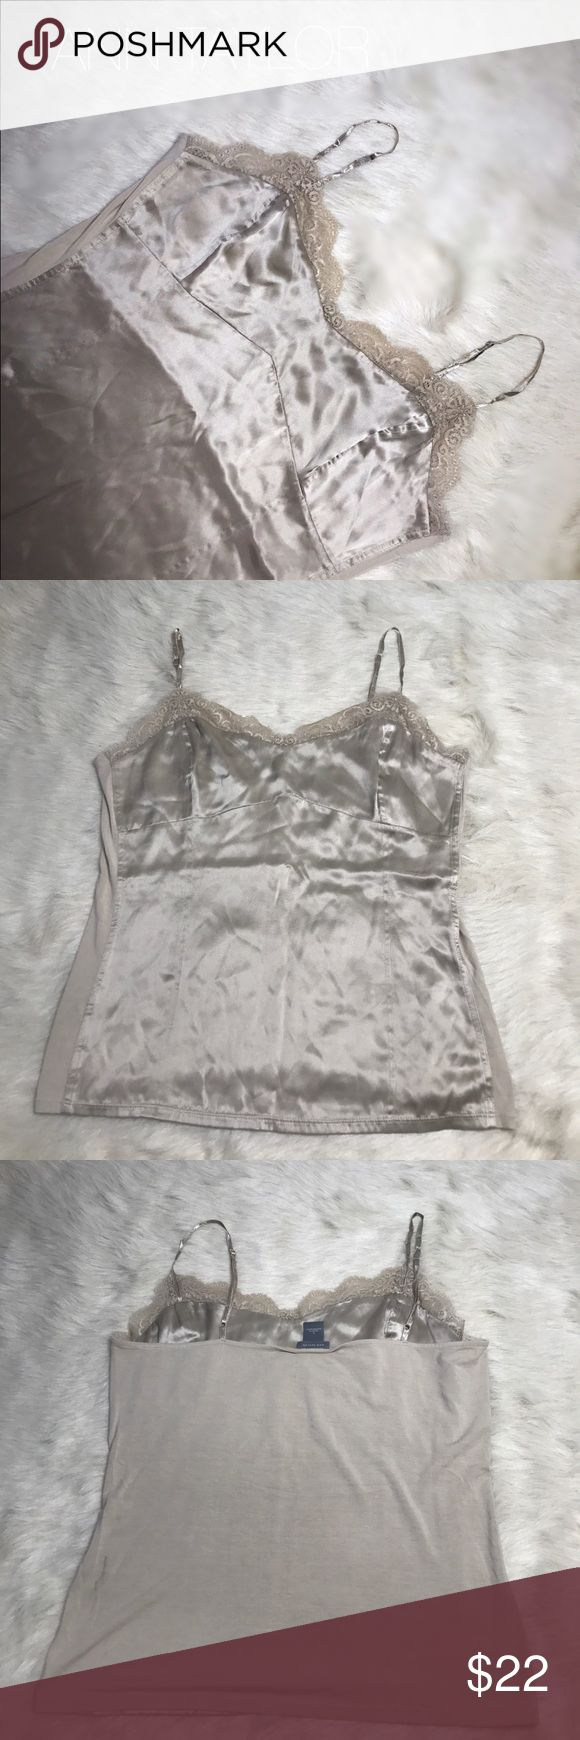 ann taylor silk rayon lace cami - bodycon, top like new w/o tag in large no flaws size Large in Light sunset gold - gorgeous fit x feel Ann Taylor Tops